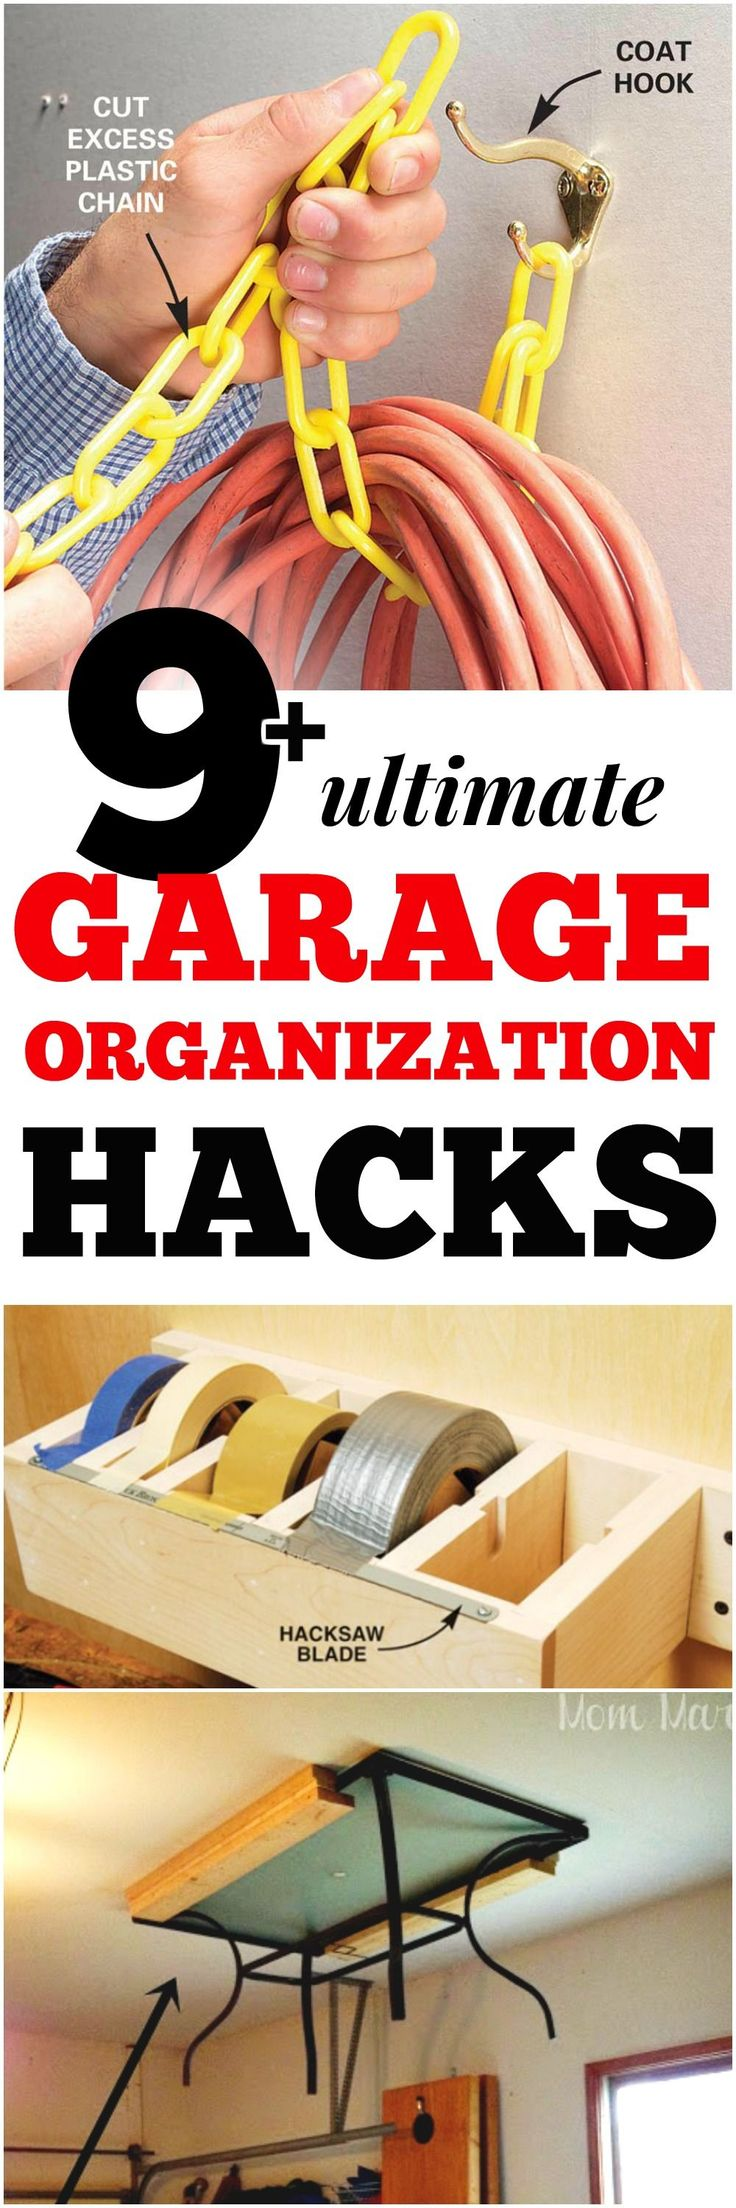 9+ ULTIMATE Garage Hacks